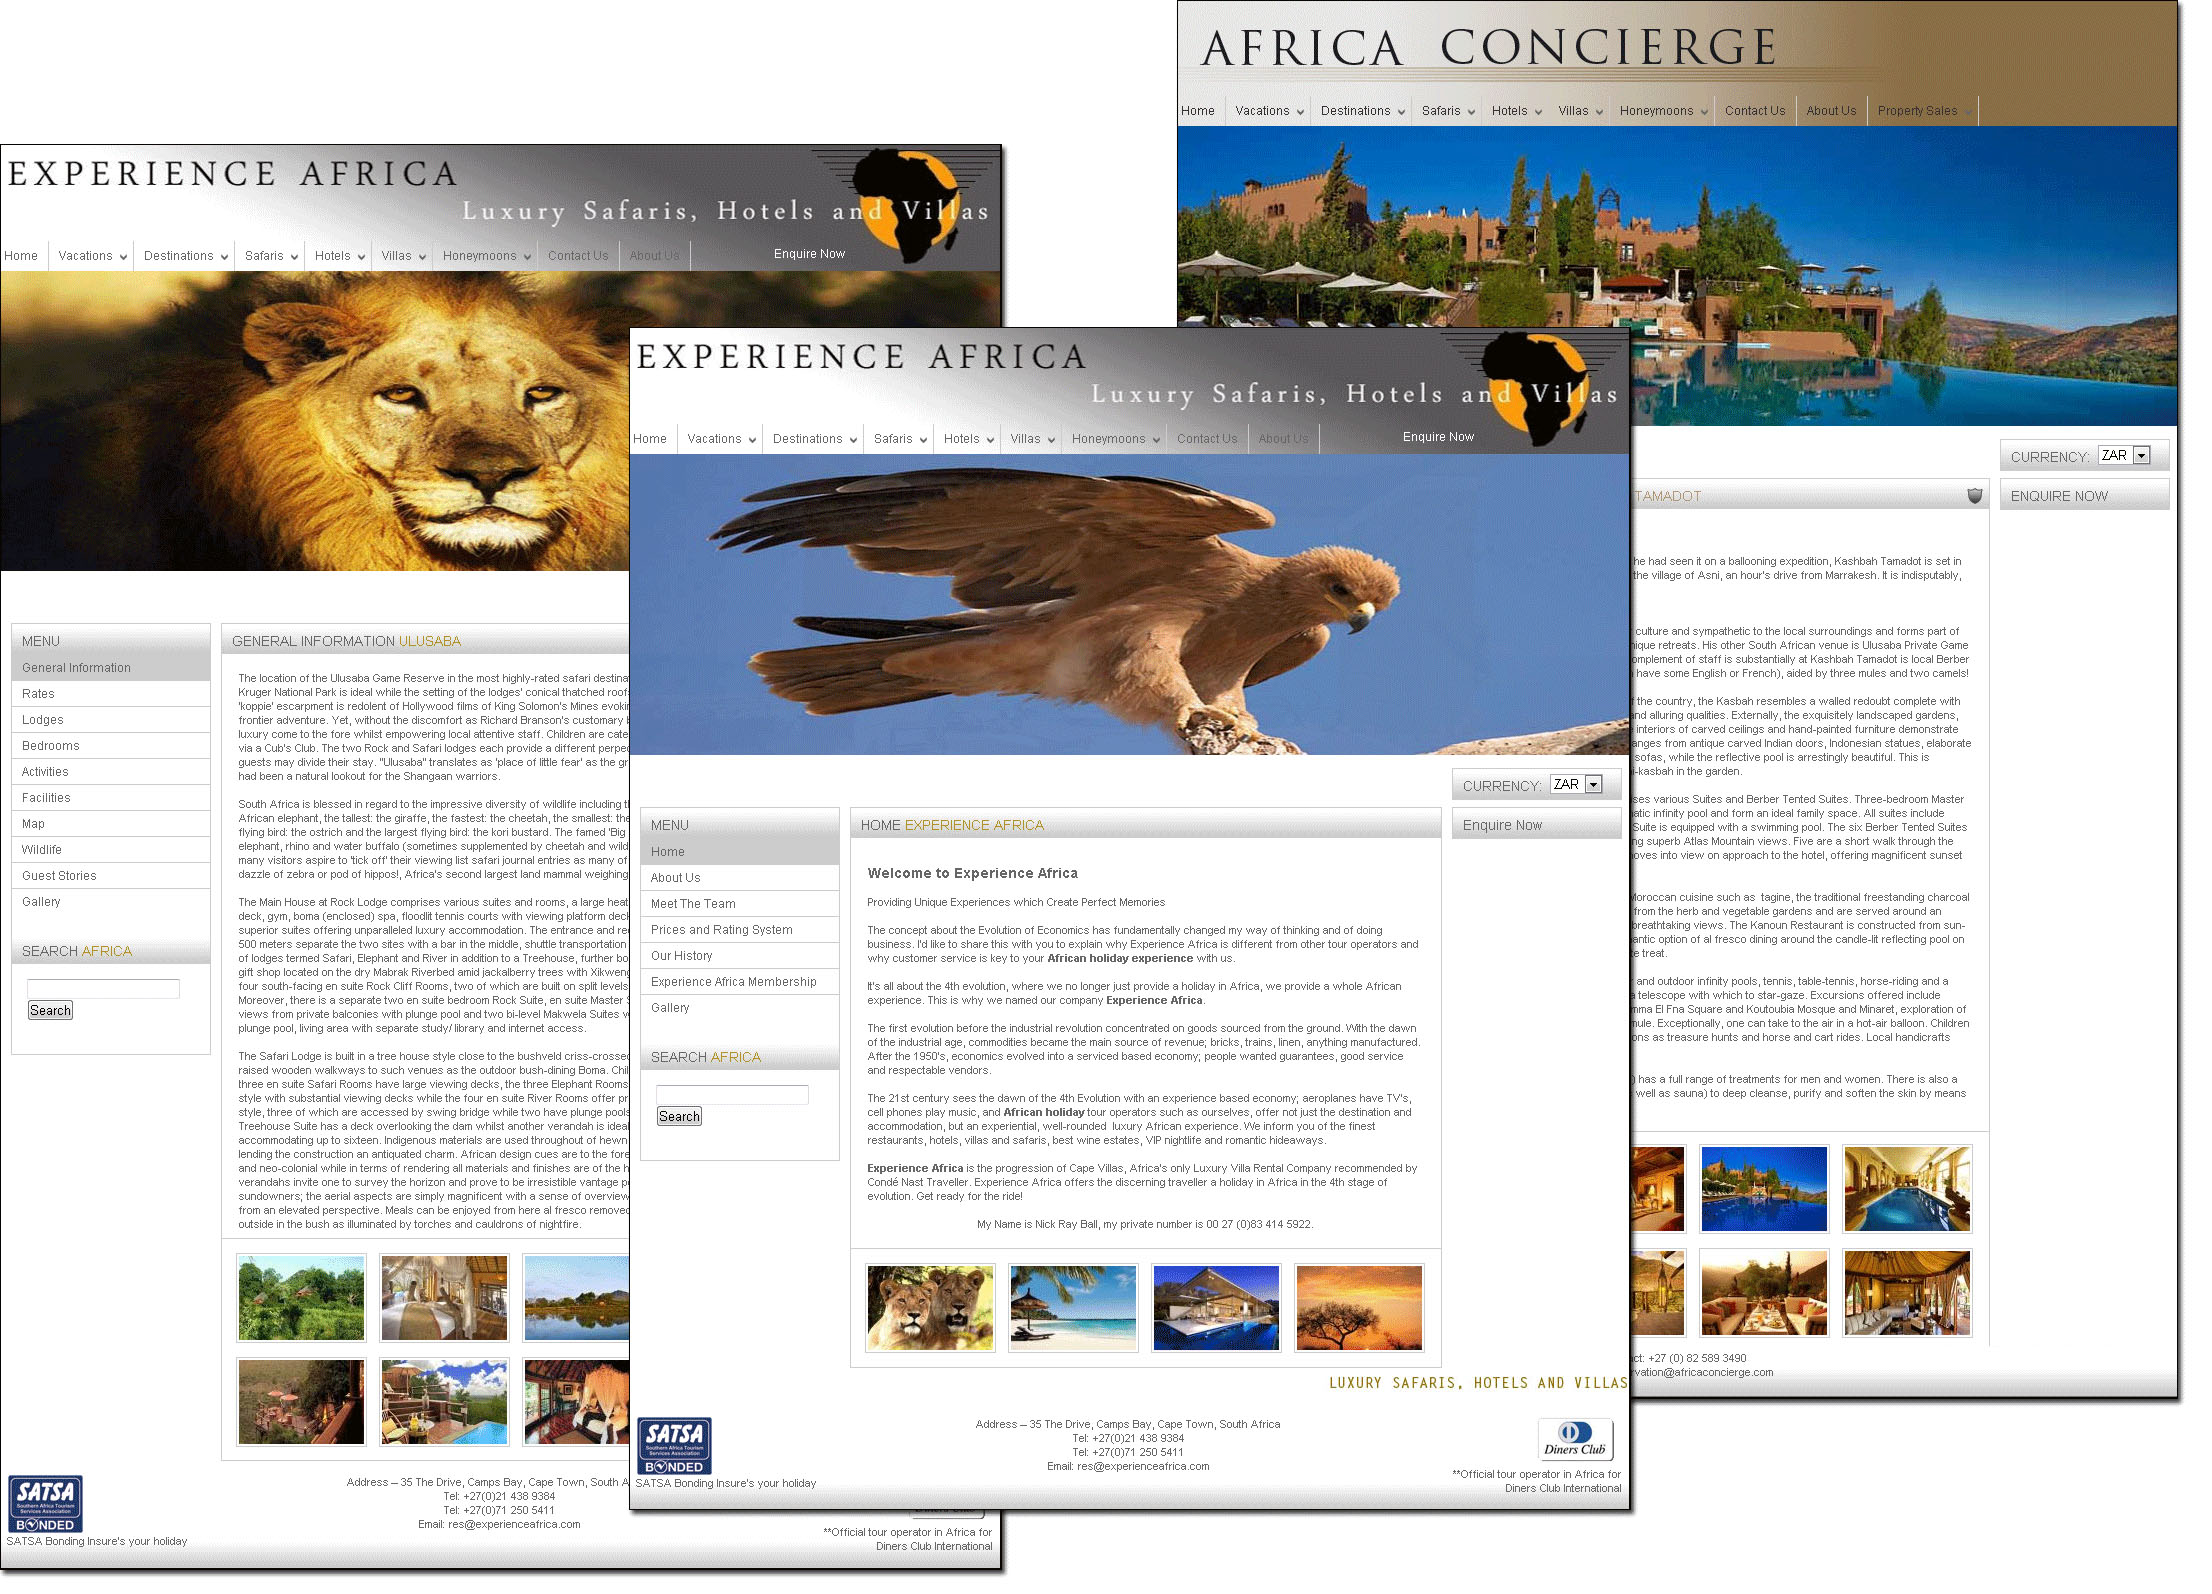 expereince_africa_2009-10